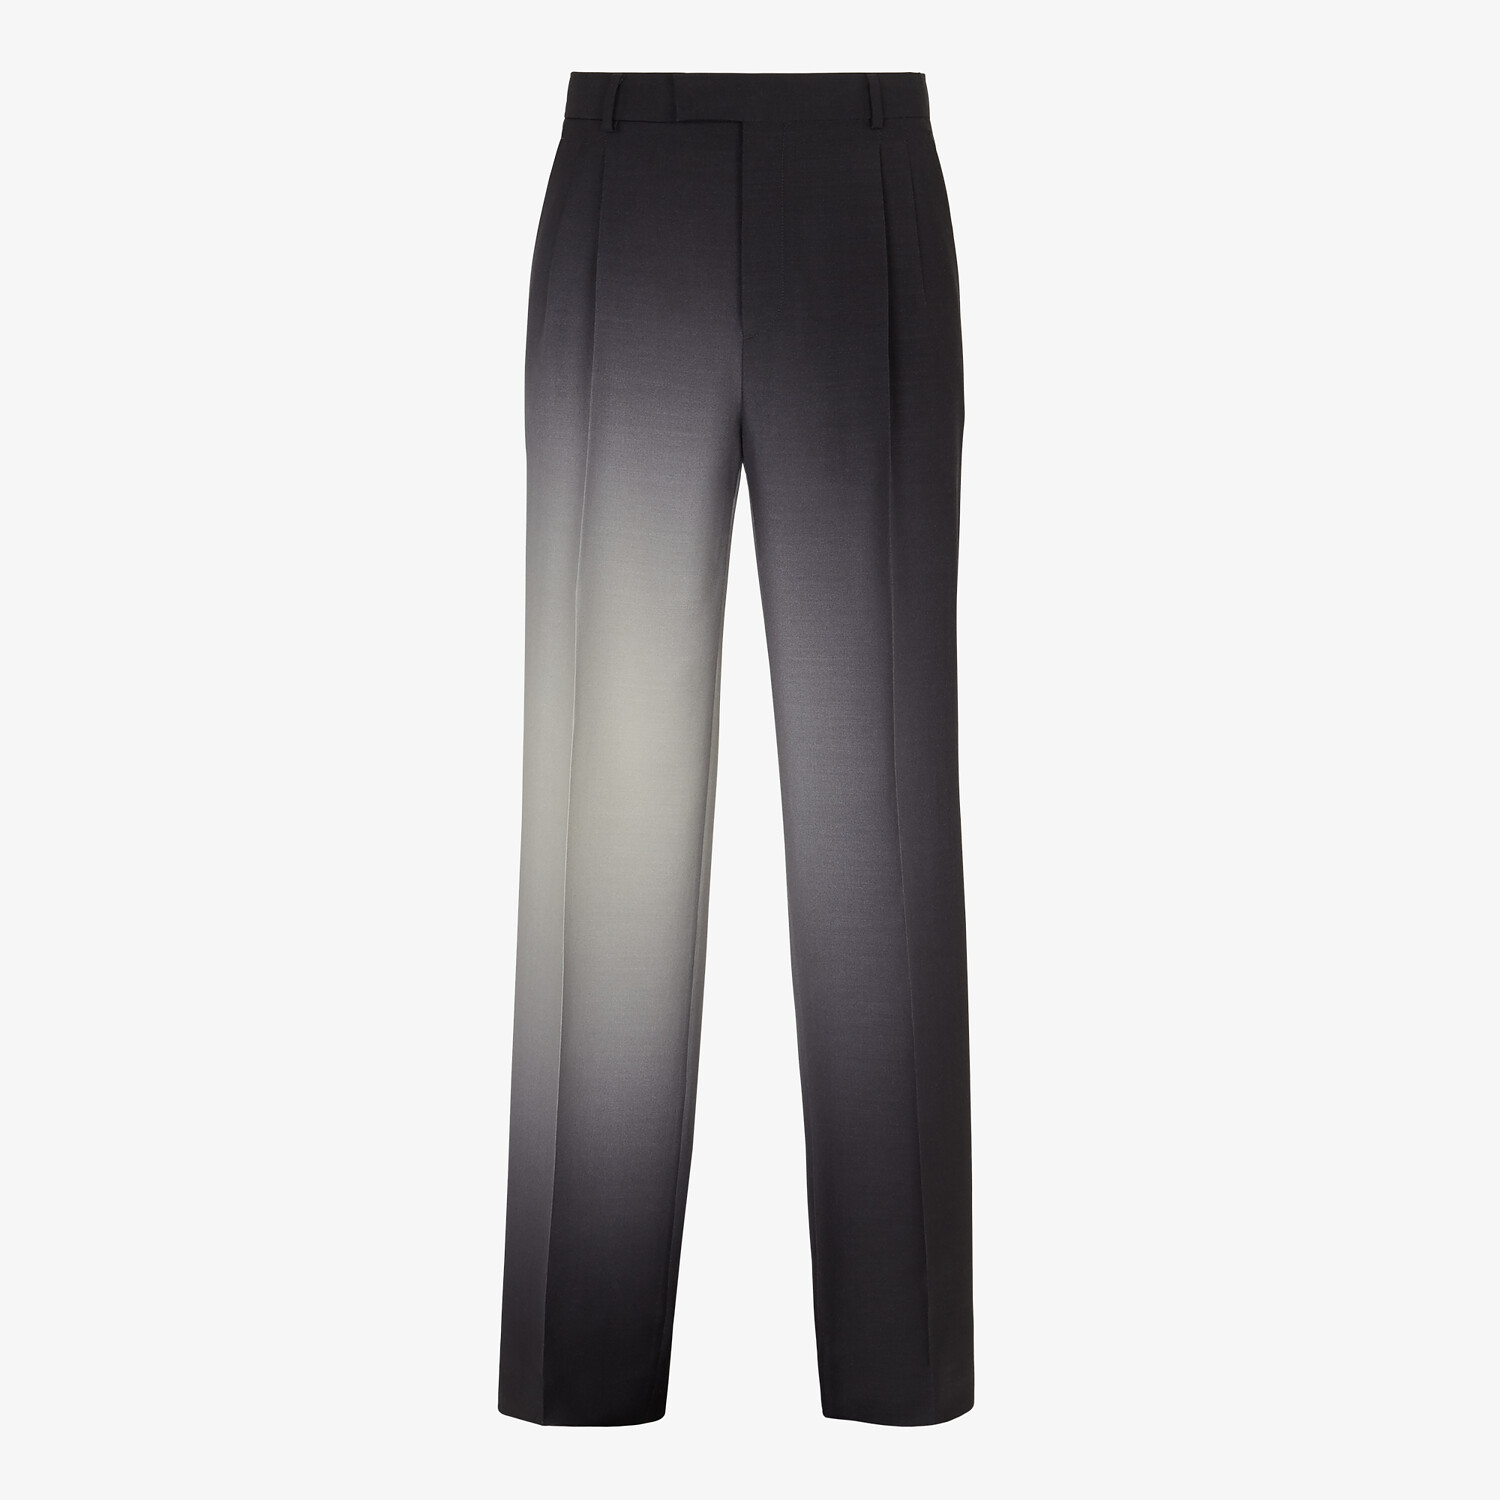 FENDI PANTS - Black wool pants - view 1 detail